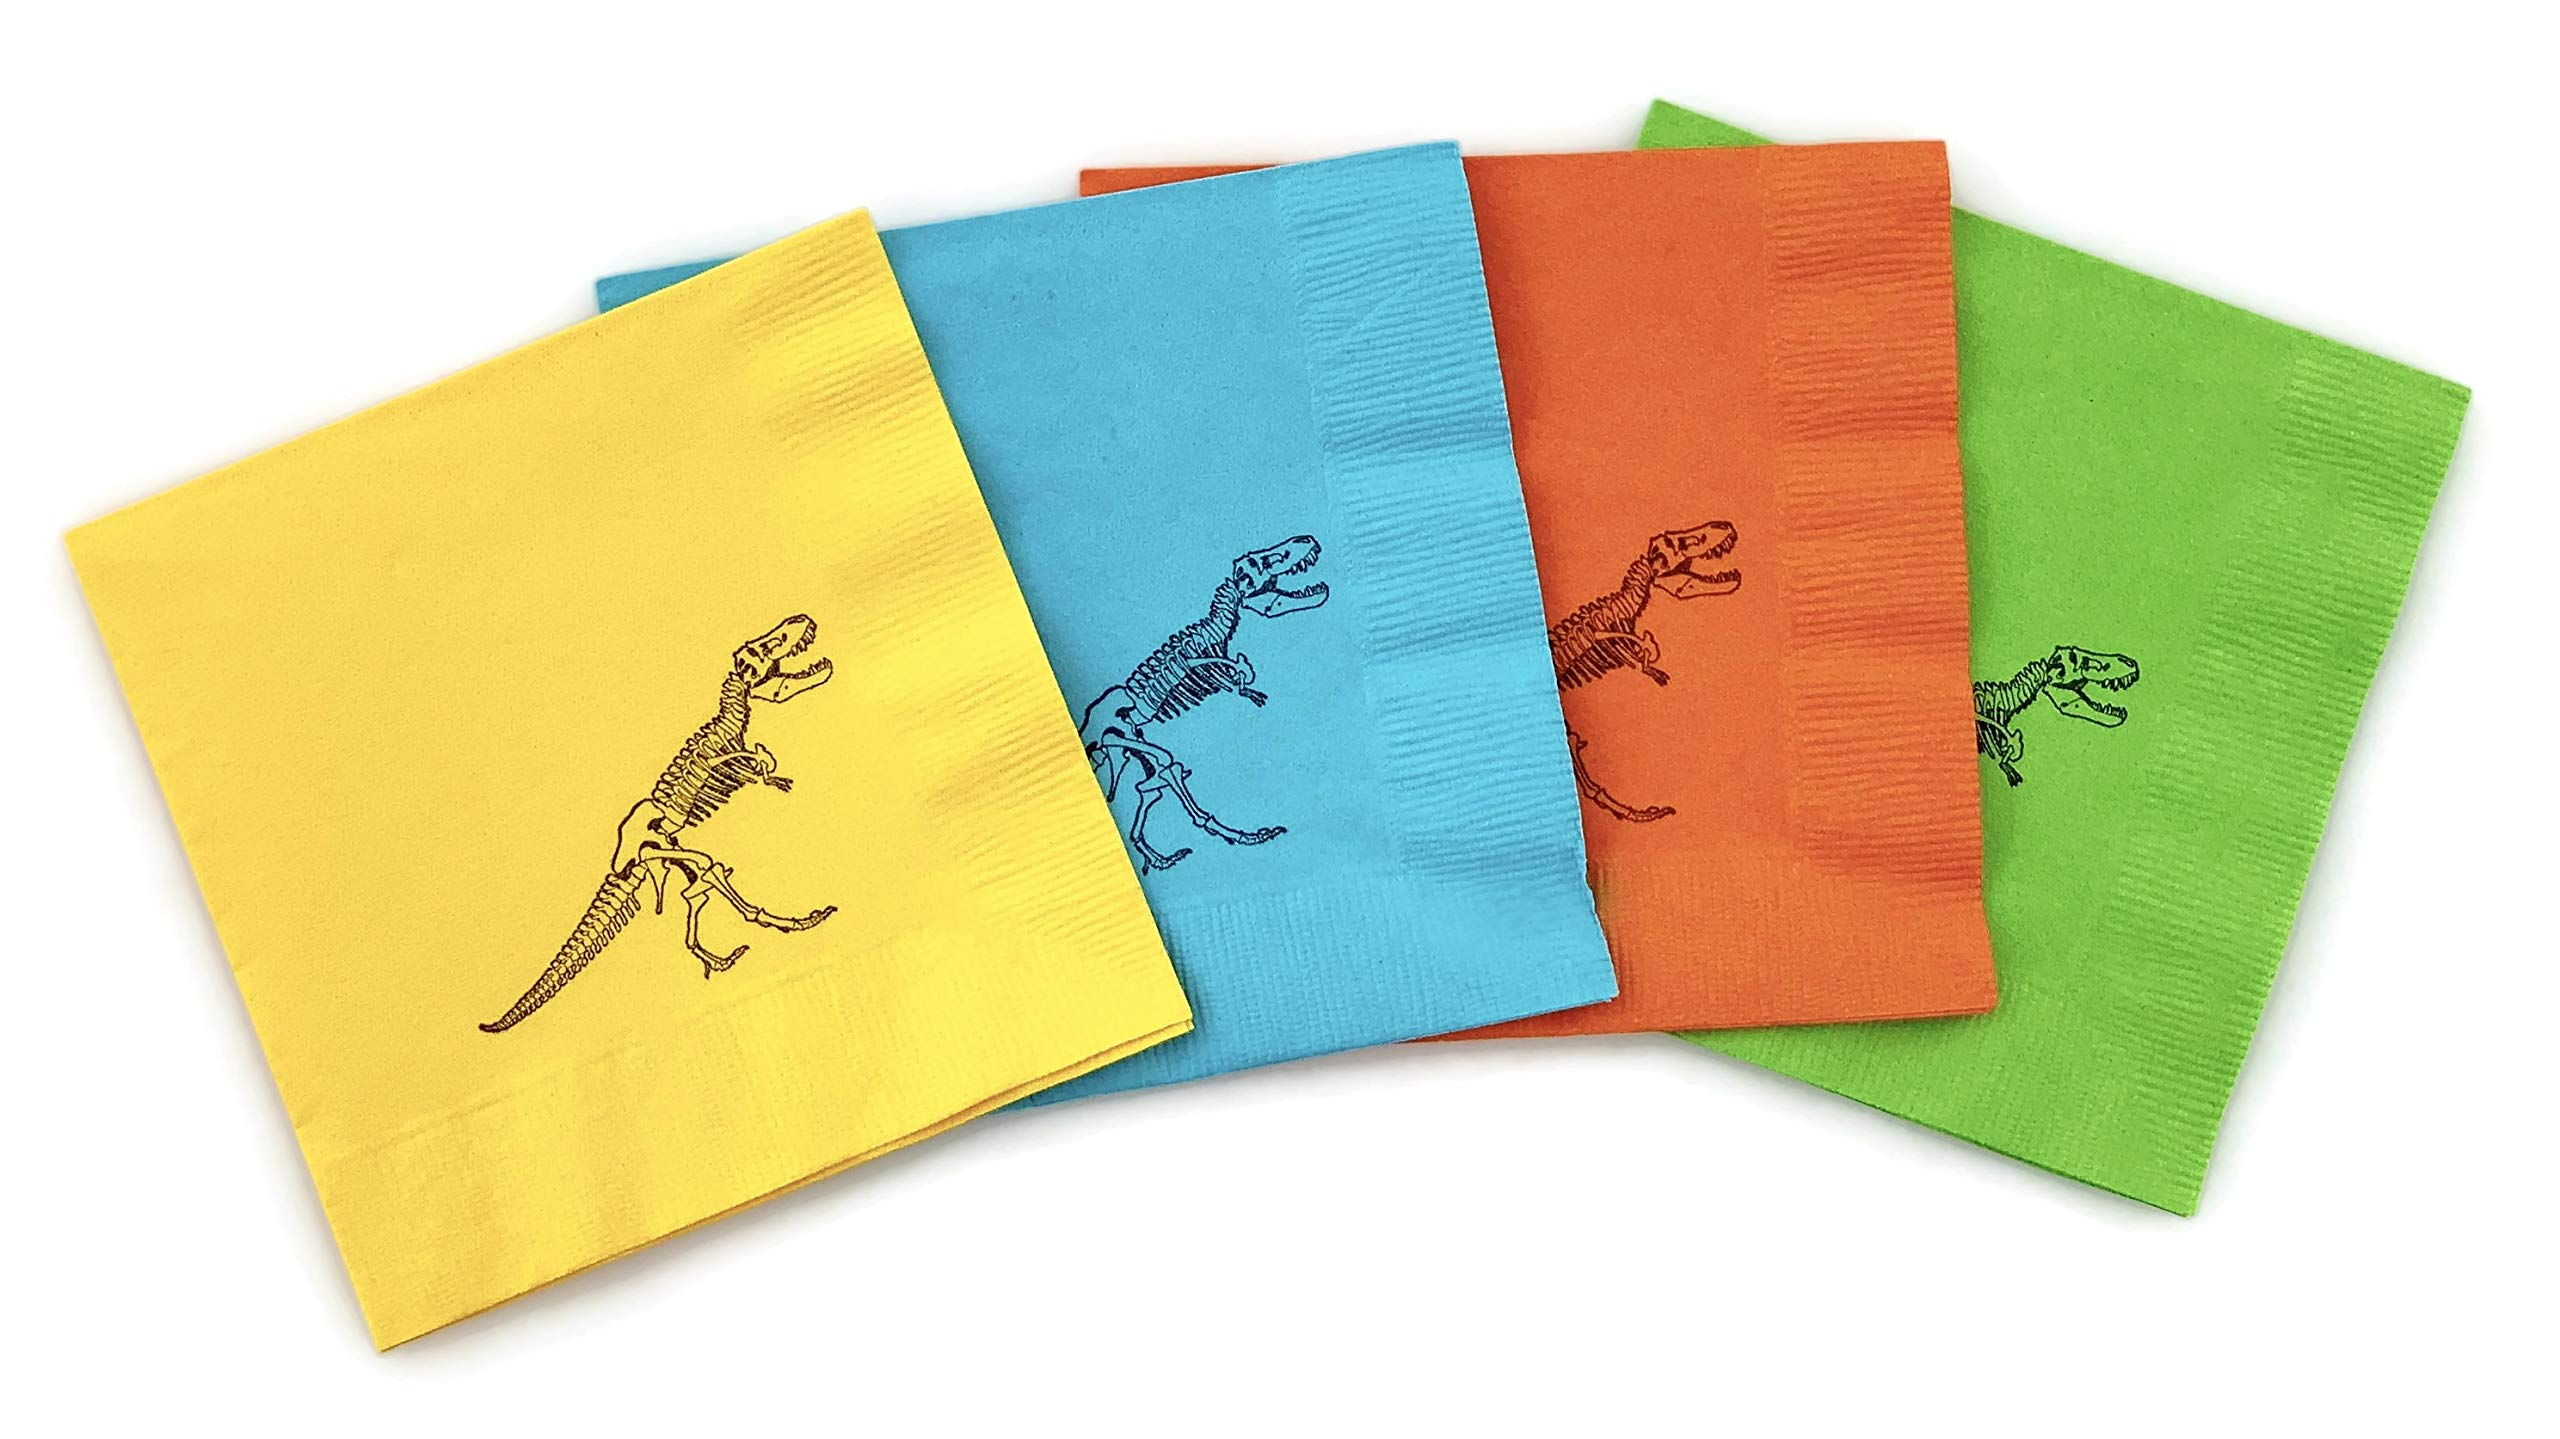 Dinosaur Napkins - Orange Green Blue Yellow Dino Birthday Party Supplies 24 Set by Stesha Party